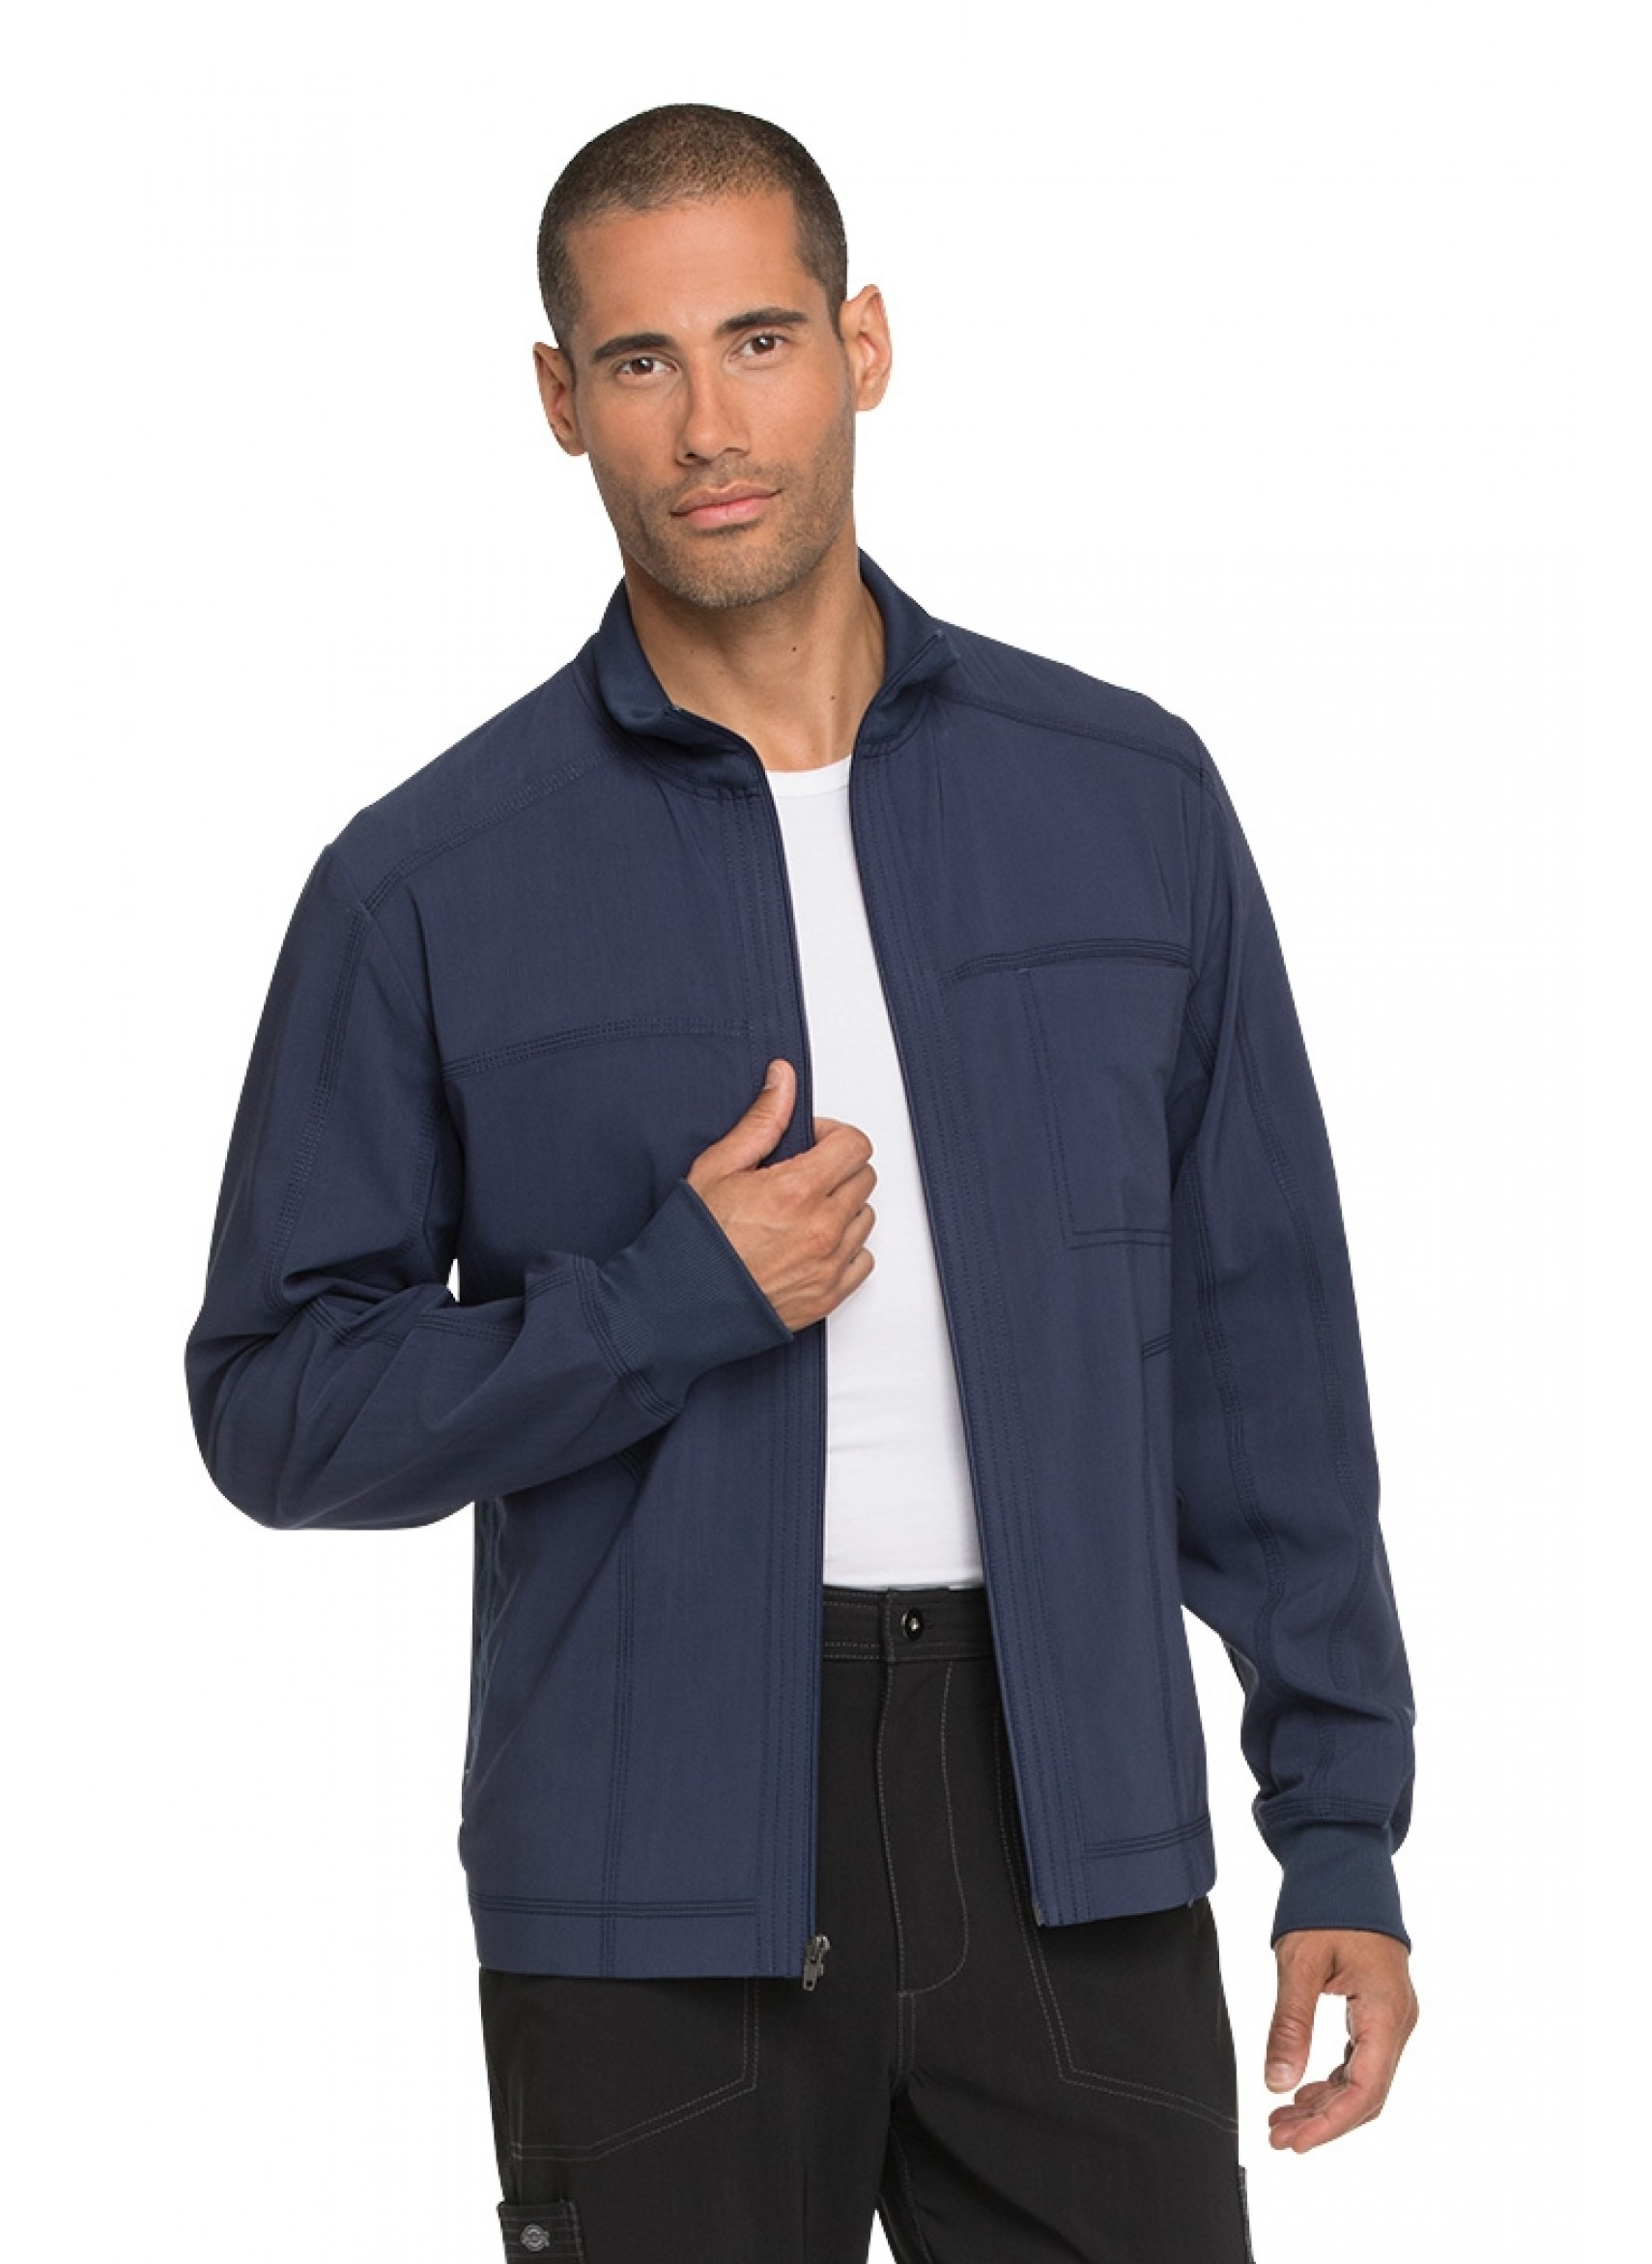 d552d27dfcd 20% off all Dickies Scrubs! Use code DICKIES20 at checkout! Dickies Advance  Men's Scrub Jacket ...